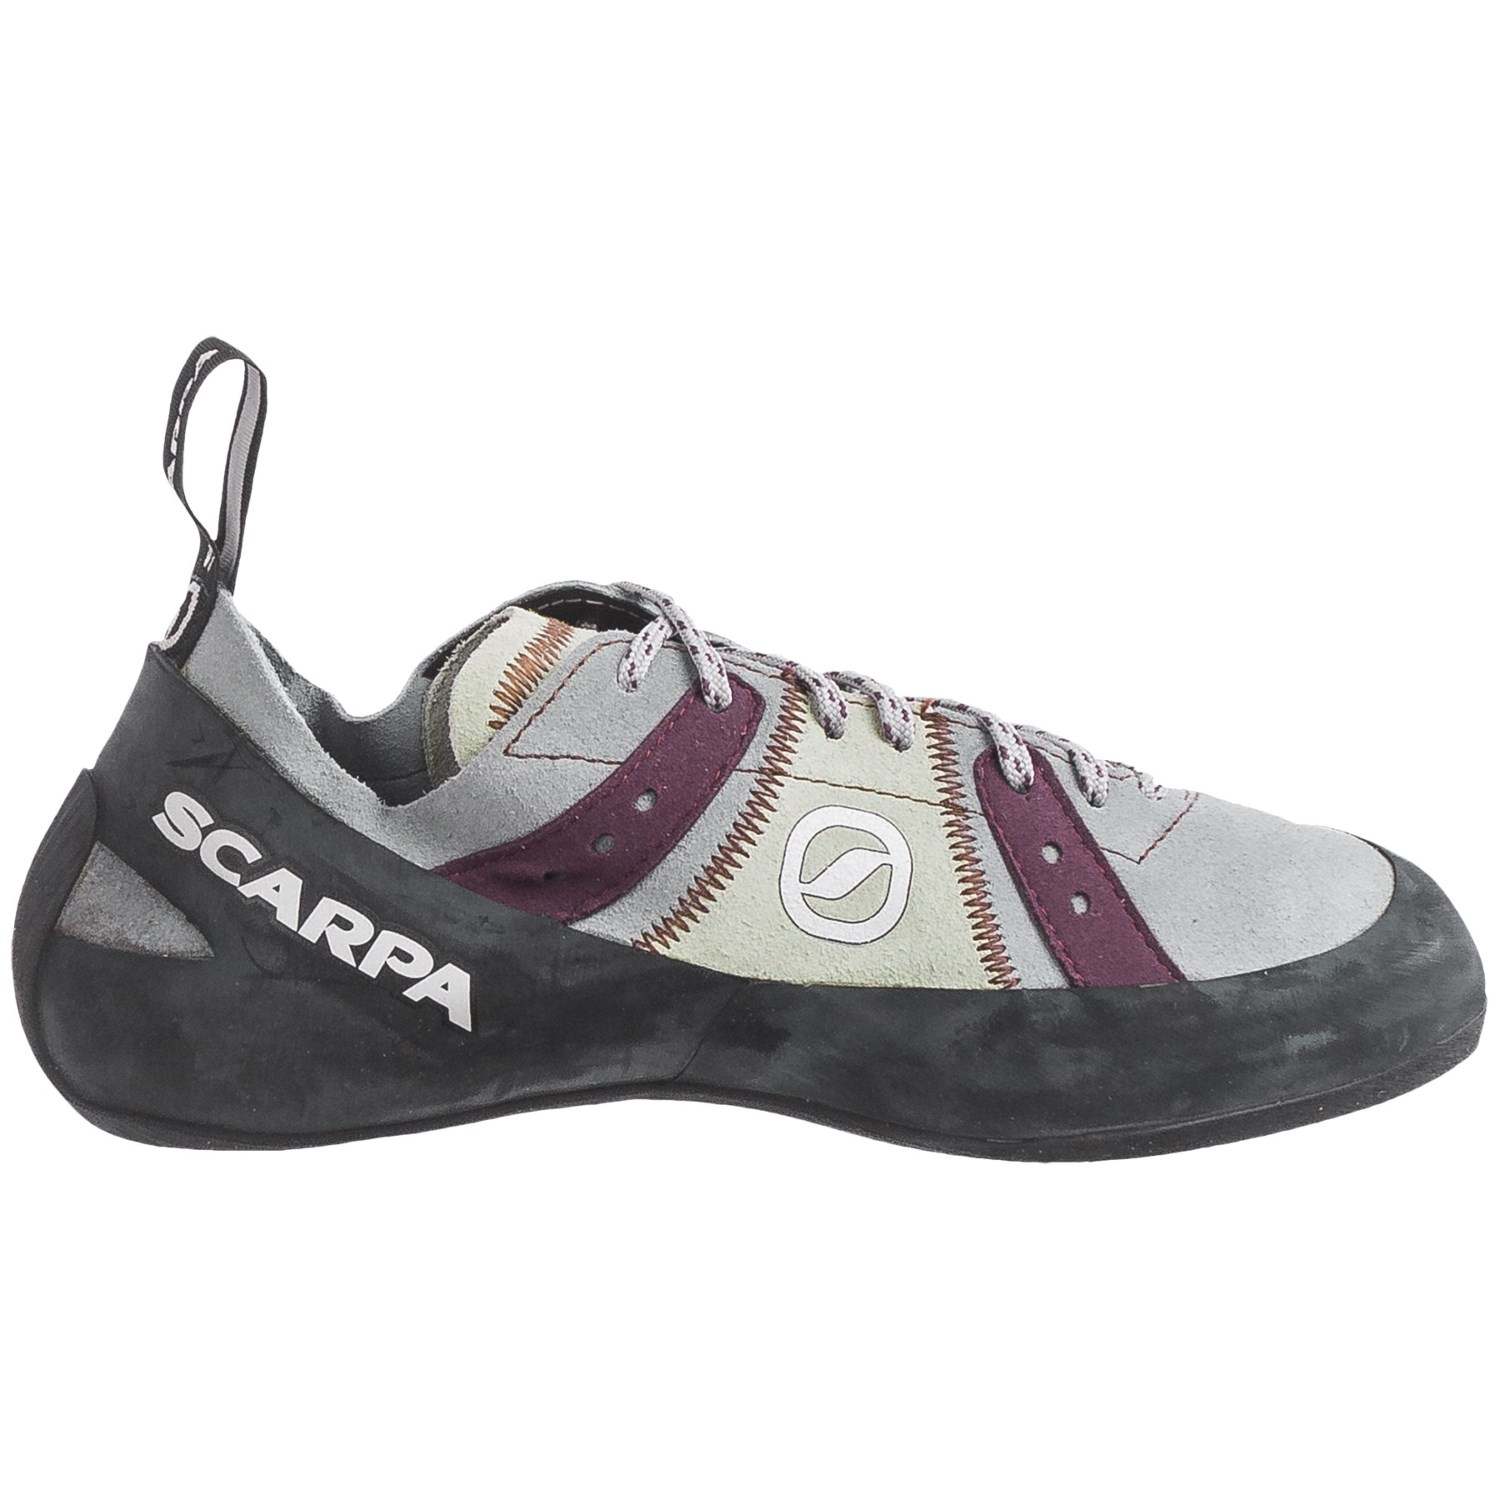 32e1b147461eba Scarpa Made in Italy Helix Climbing Shoes (For Women) - Save 39%